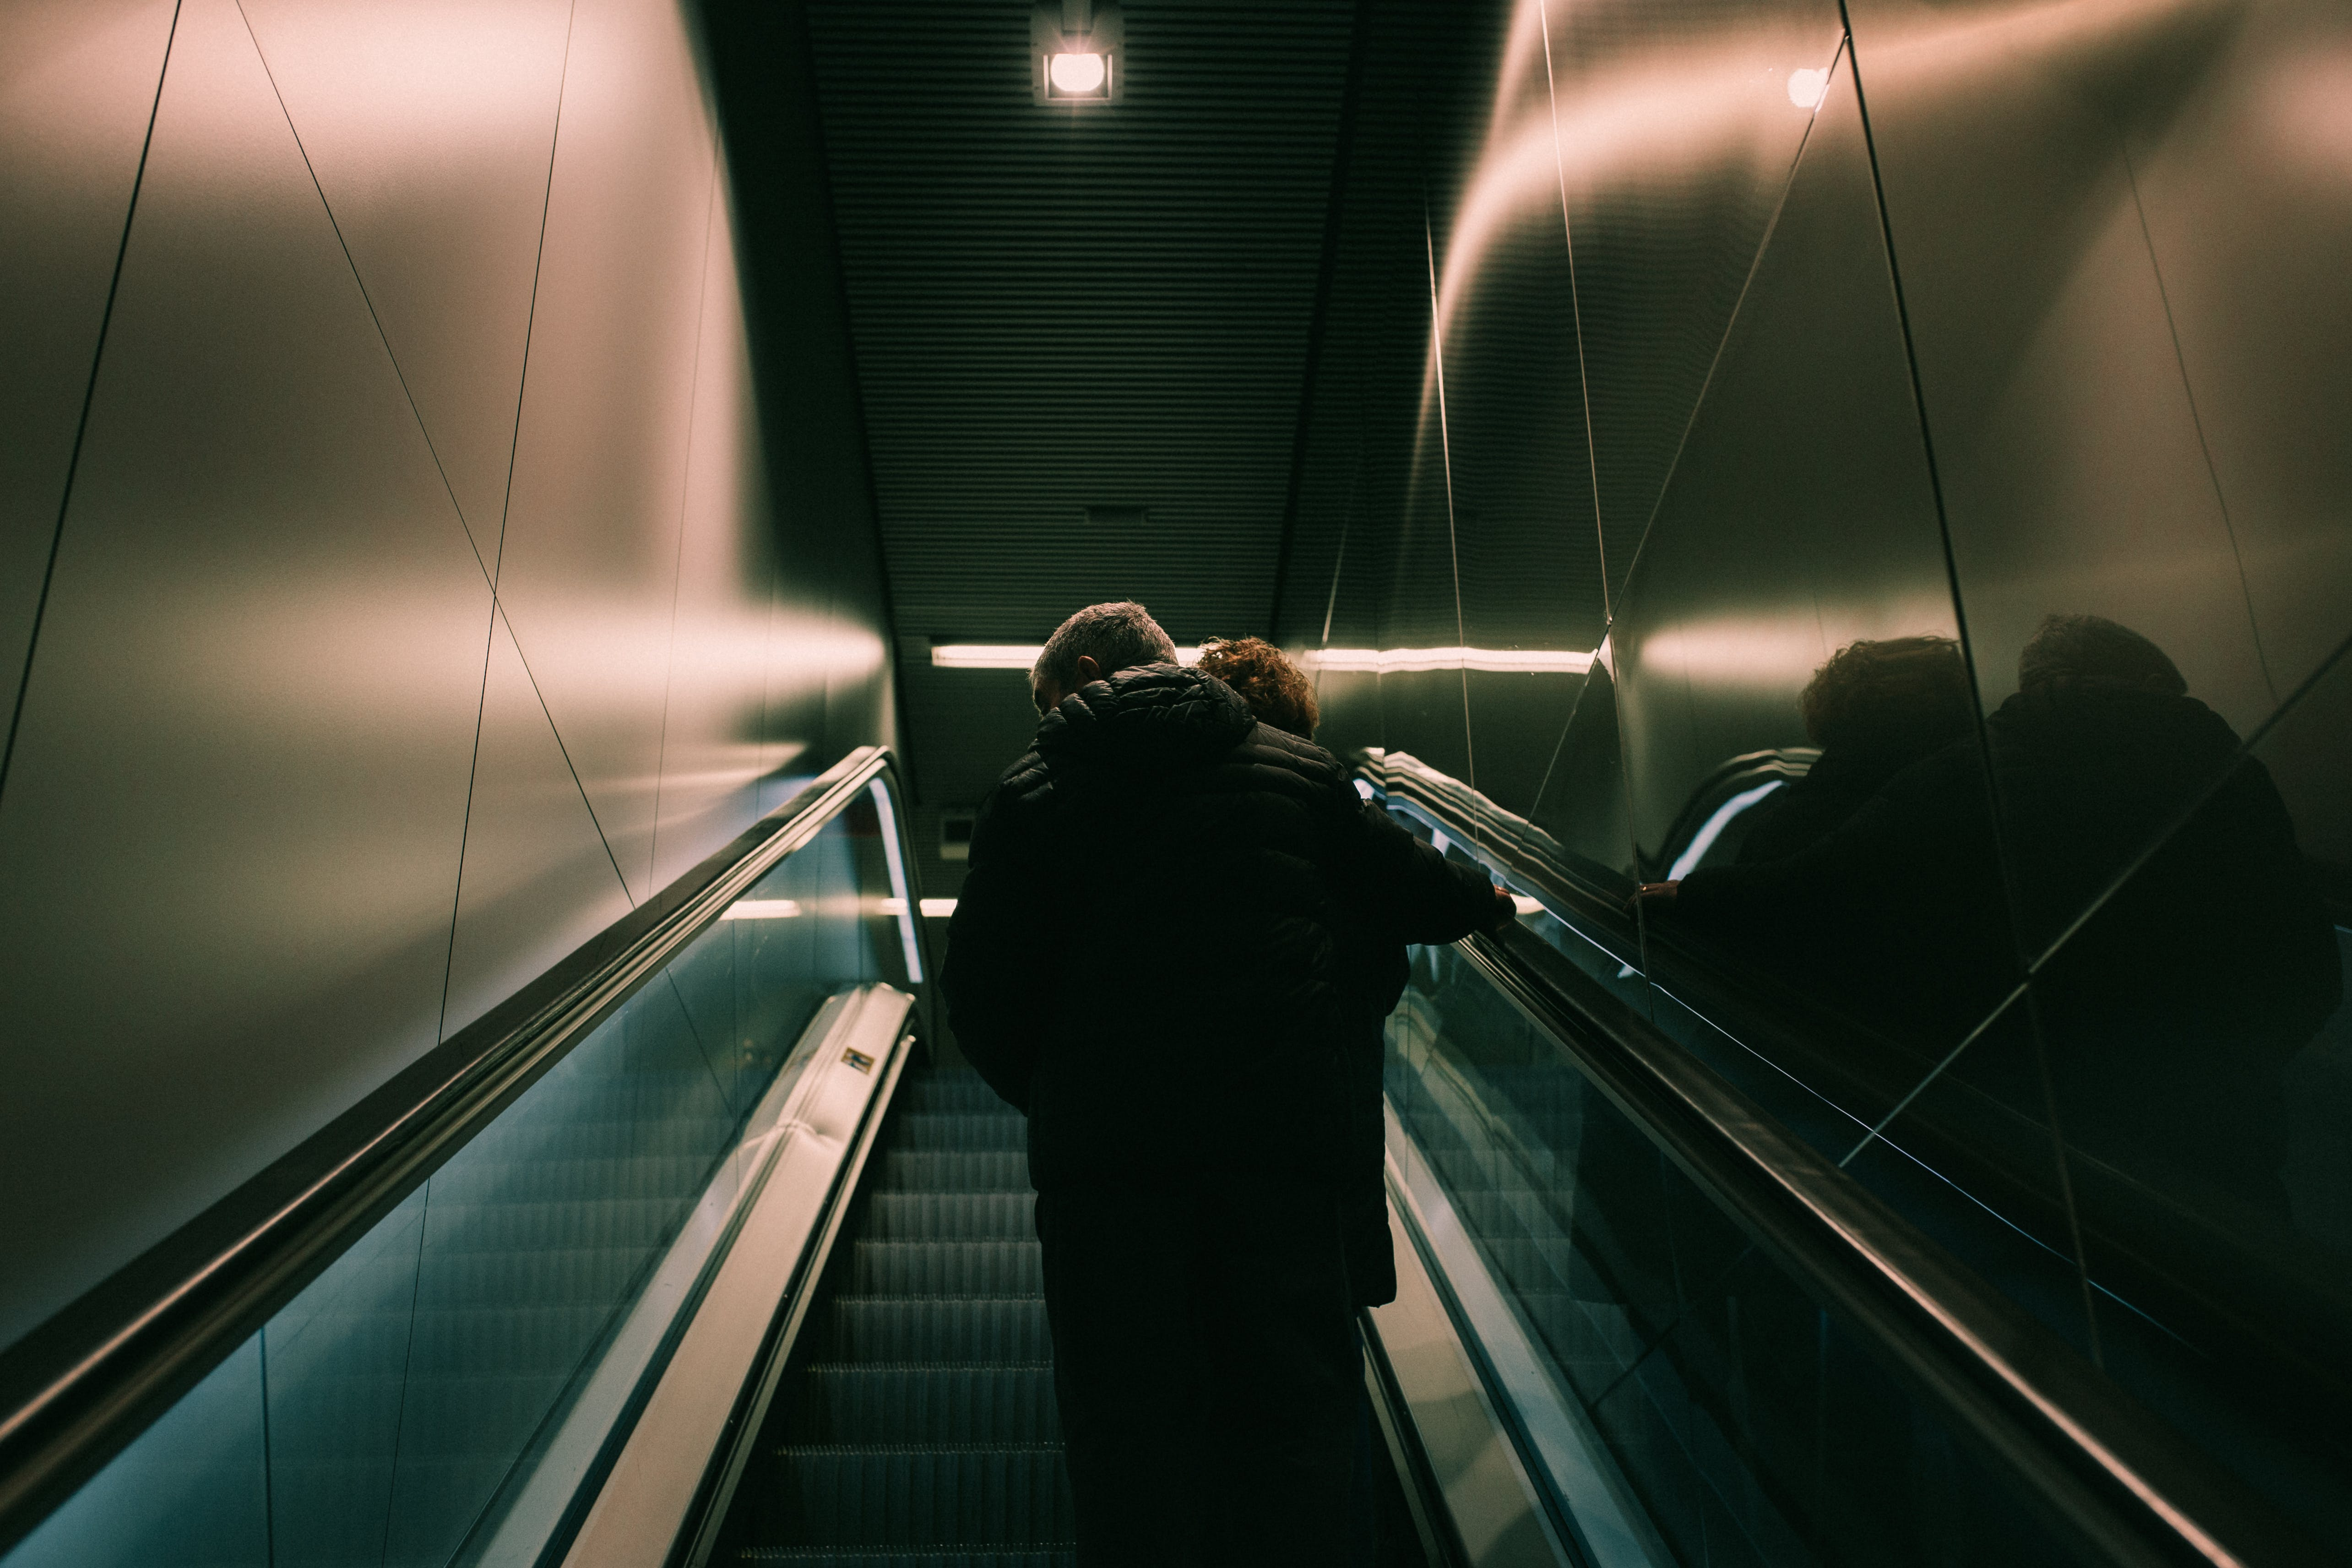 Person in Black Jacket Standing on Escalator